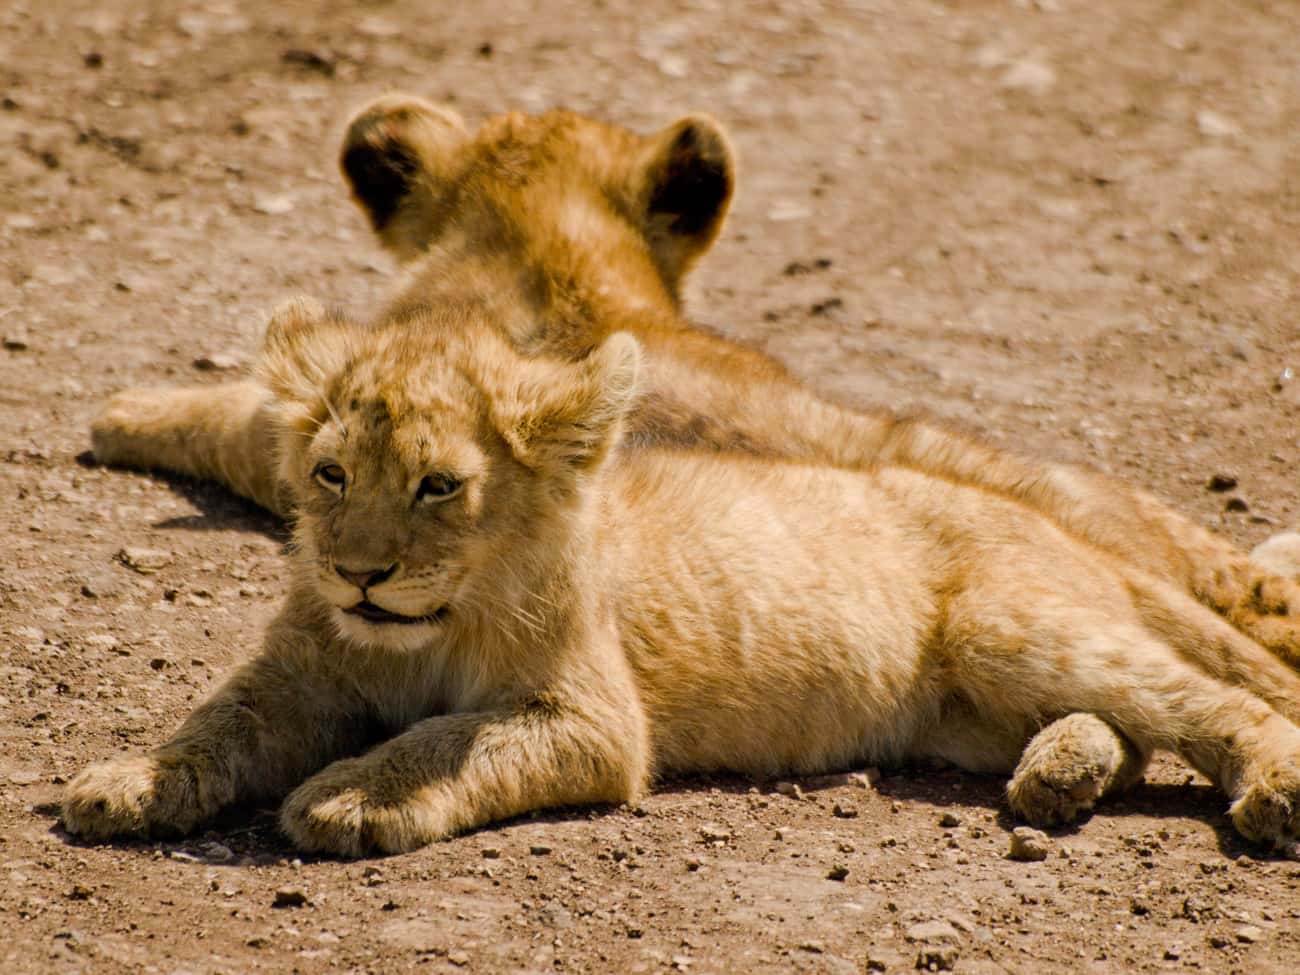 Lions is listed (or ranked) 3 on the list Adorable Baby Versions Of Terrifying Animals